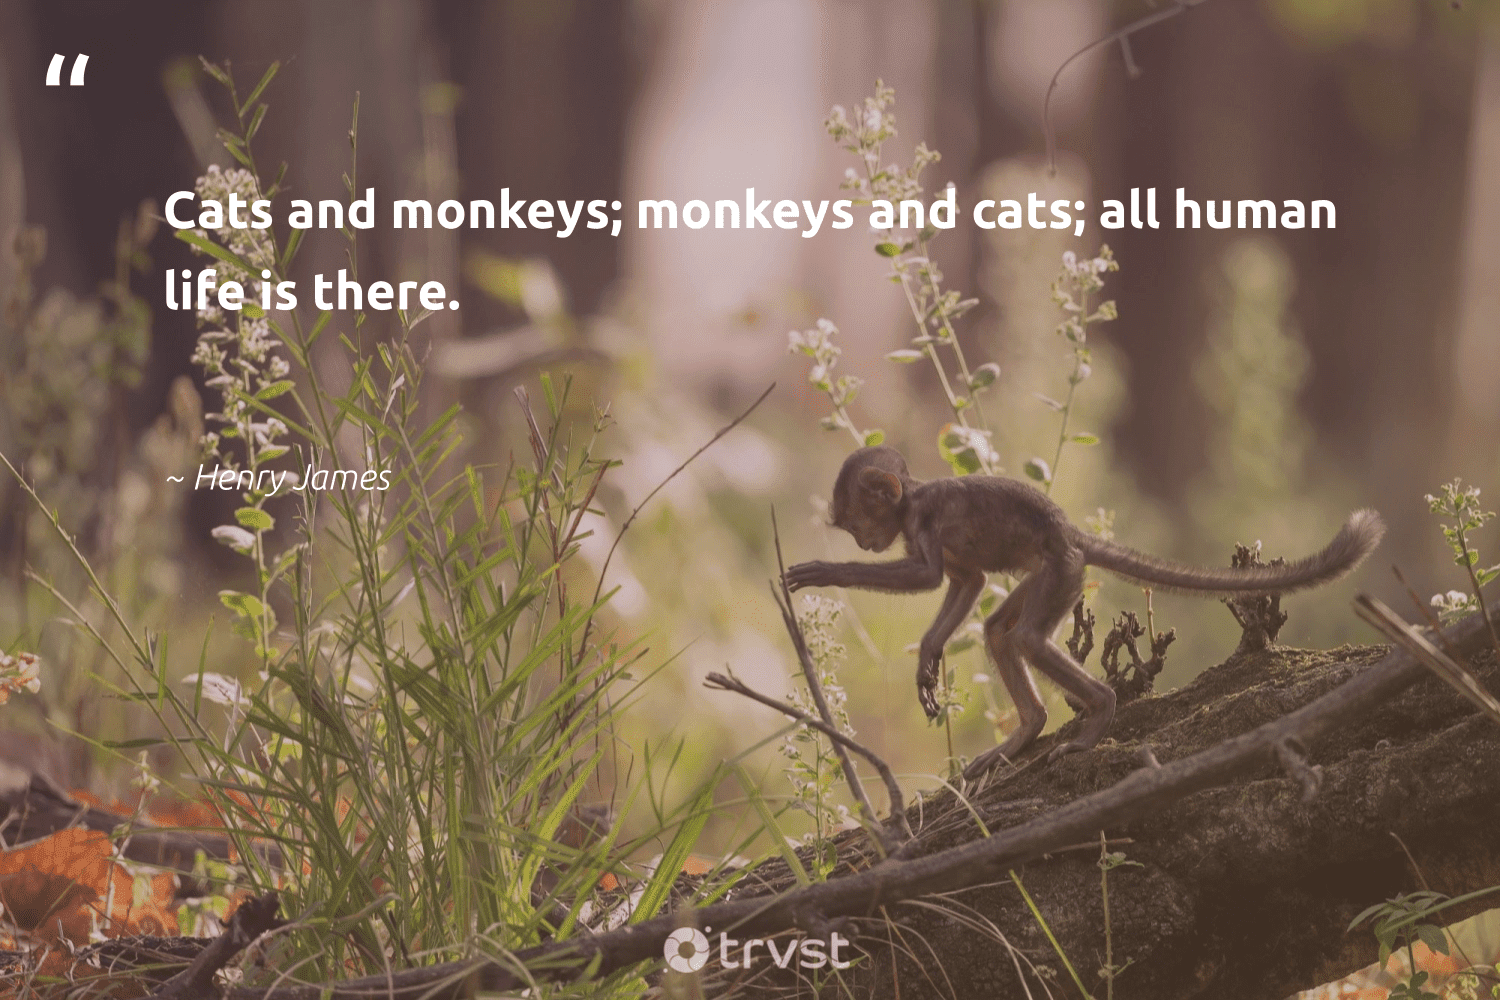 """""""Cats and monkeys; monkeys and cats; all human life is there.""""  - Henry James #trvst #quotes #monkeys #sustainability #bethechange #protectnature #dogood #splendidanimals #impact #majesticwildlife #collectiveaction #monkeylife"""